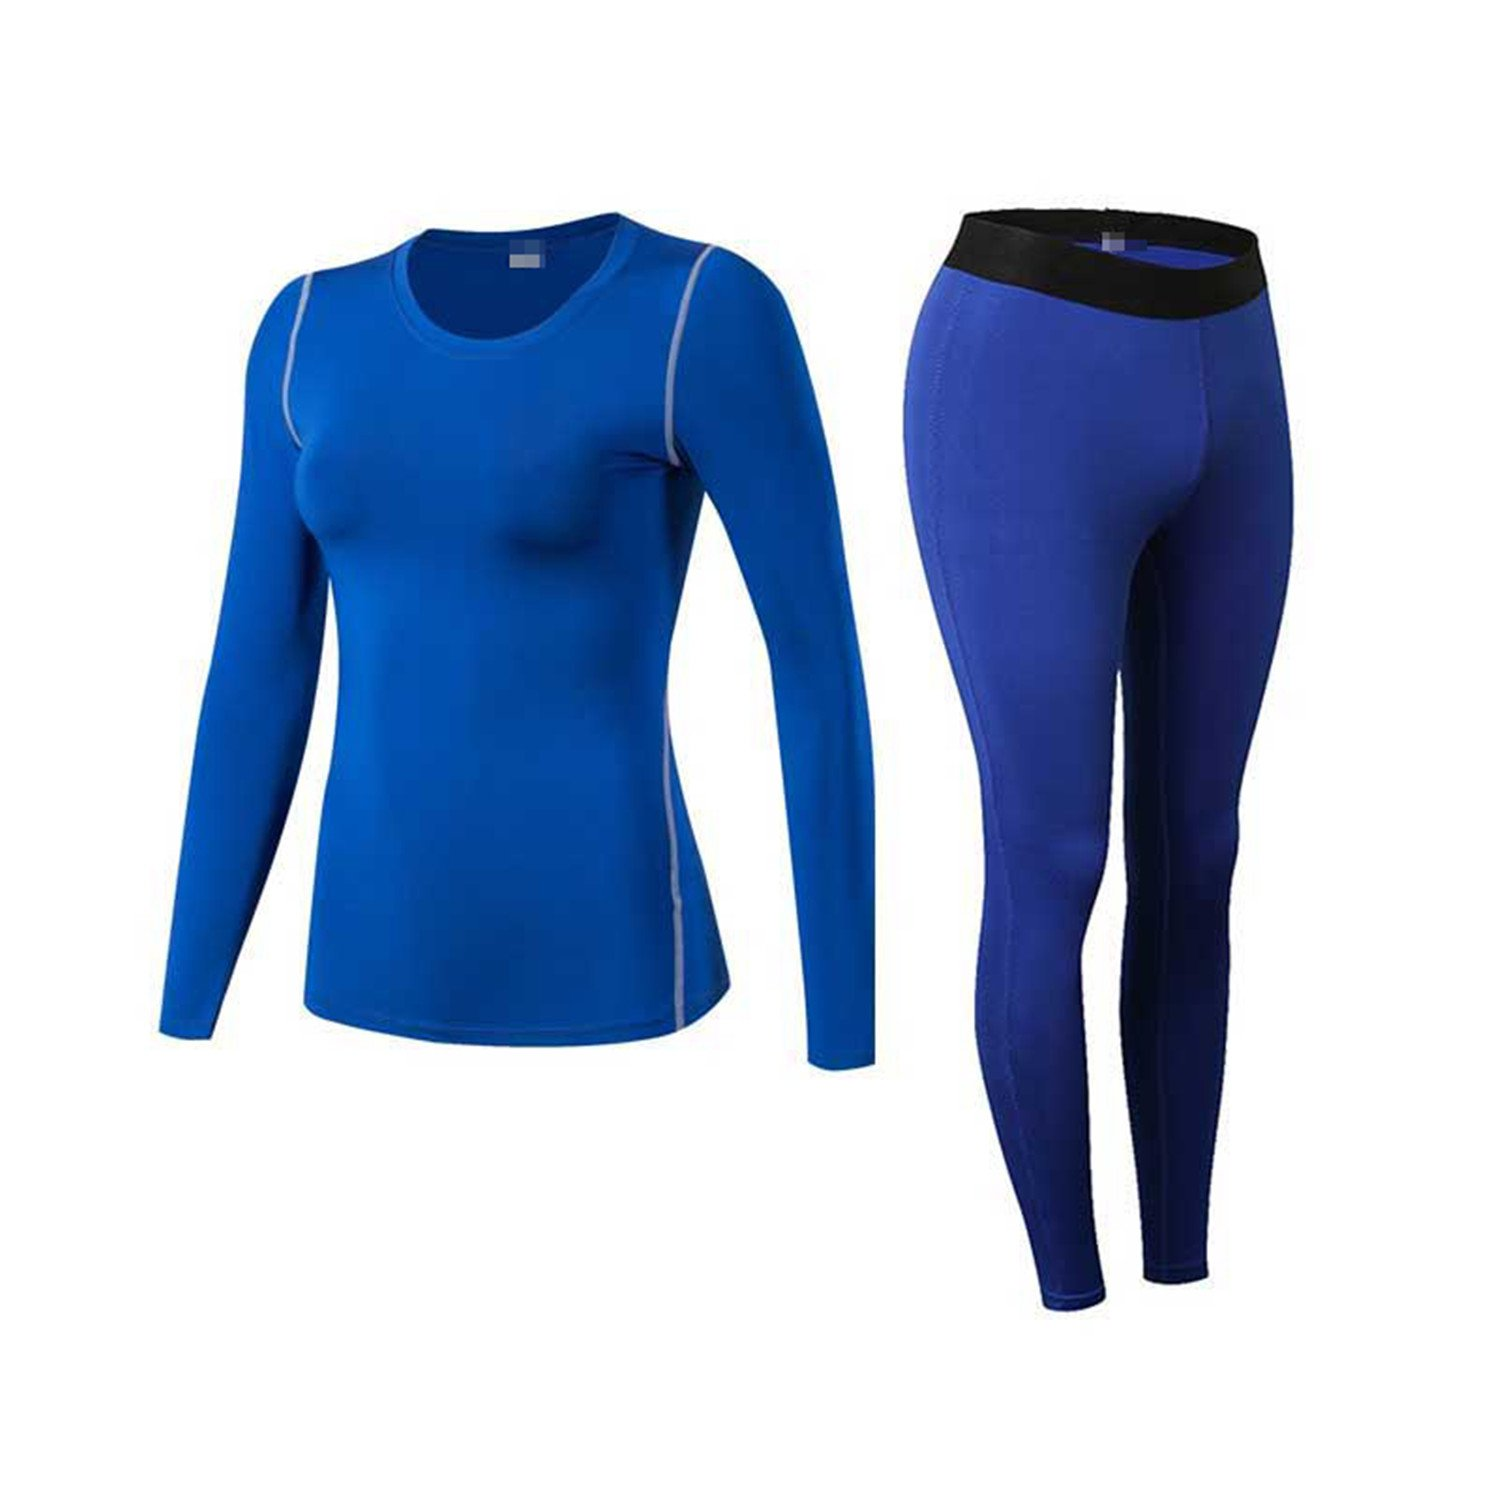 Dapengzhu Thermal Underwear Women Winter Quick Dry Anti-microbial Stretch Thermo Sporting Underwear Sets Fitness Gymming Long 1920 Blue XL